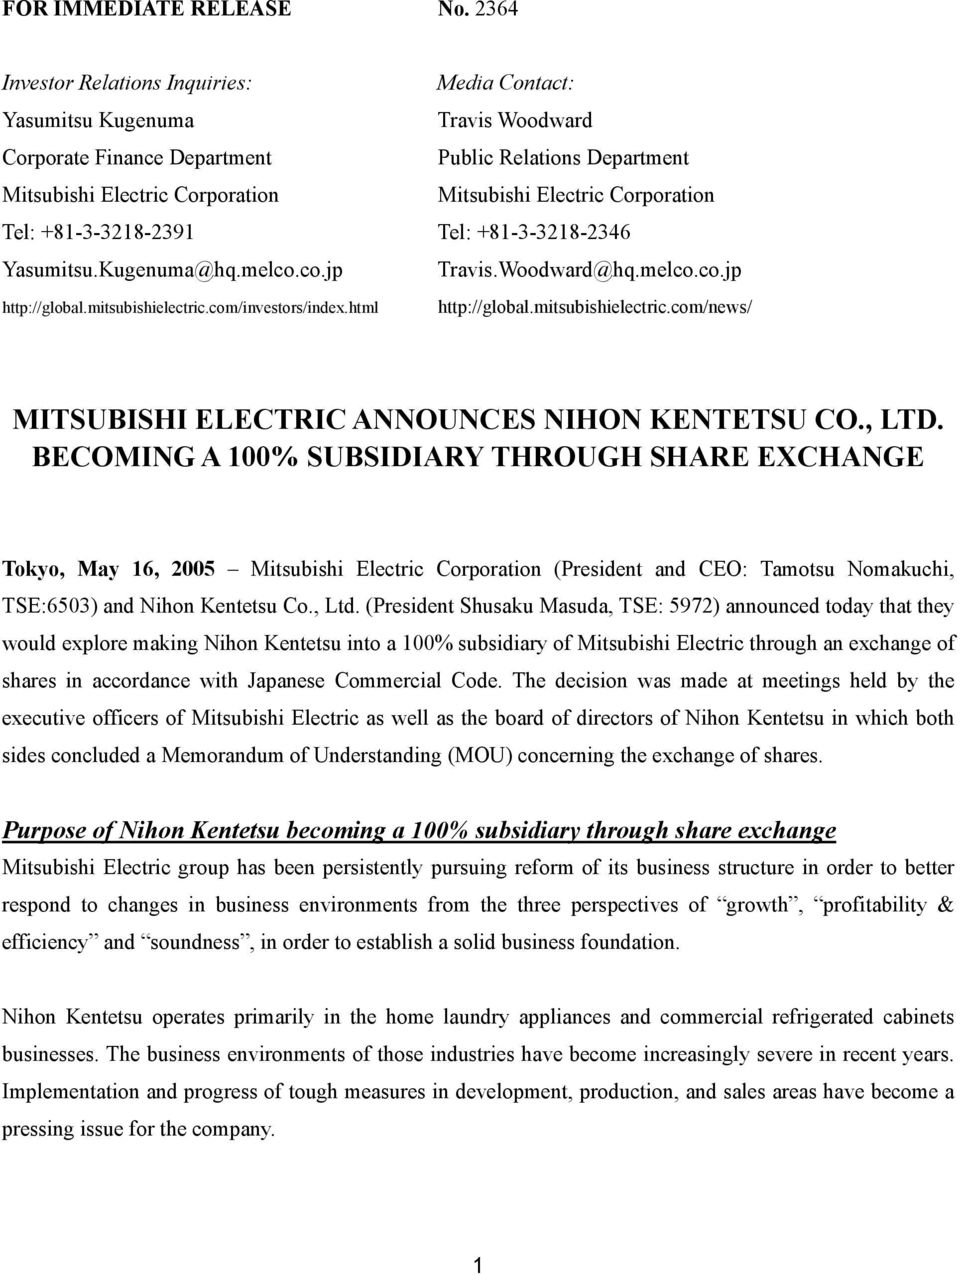 Kugenuma@hq.melco.co.jp Travis.Woodward@hq.melco.co.jp http://global.mitsubishielectric.com/investors/index.html http://global.mitsubishielectric.com/news/ MITSUBISHI ELECTRIC ANNOUNCES NIHON KENTETSU CO.